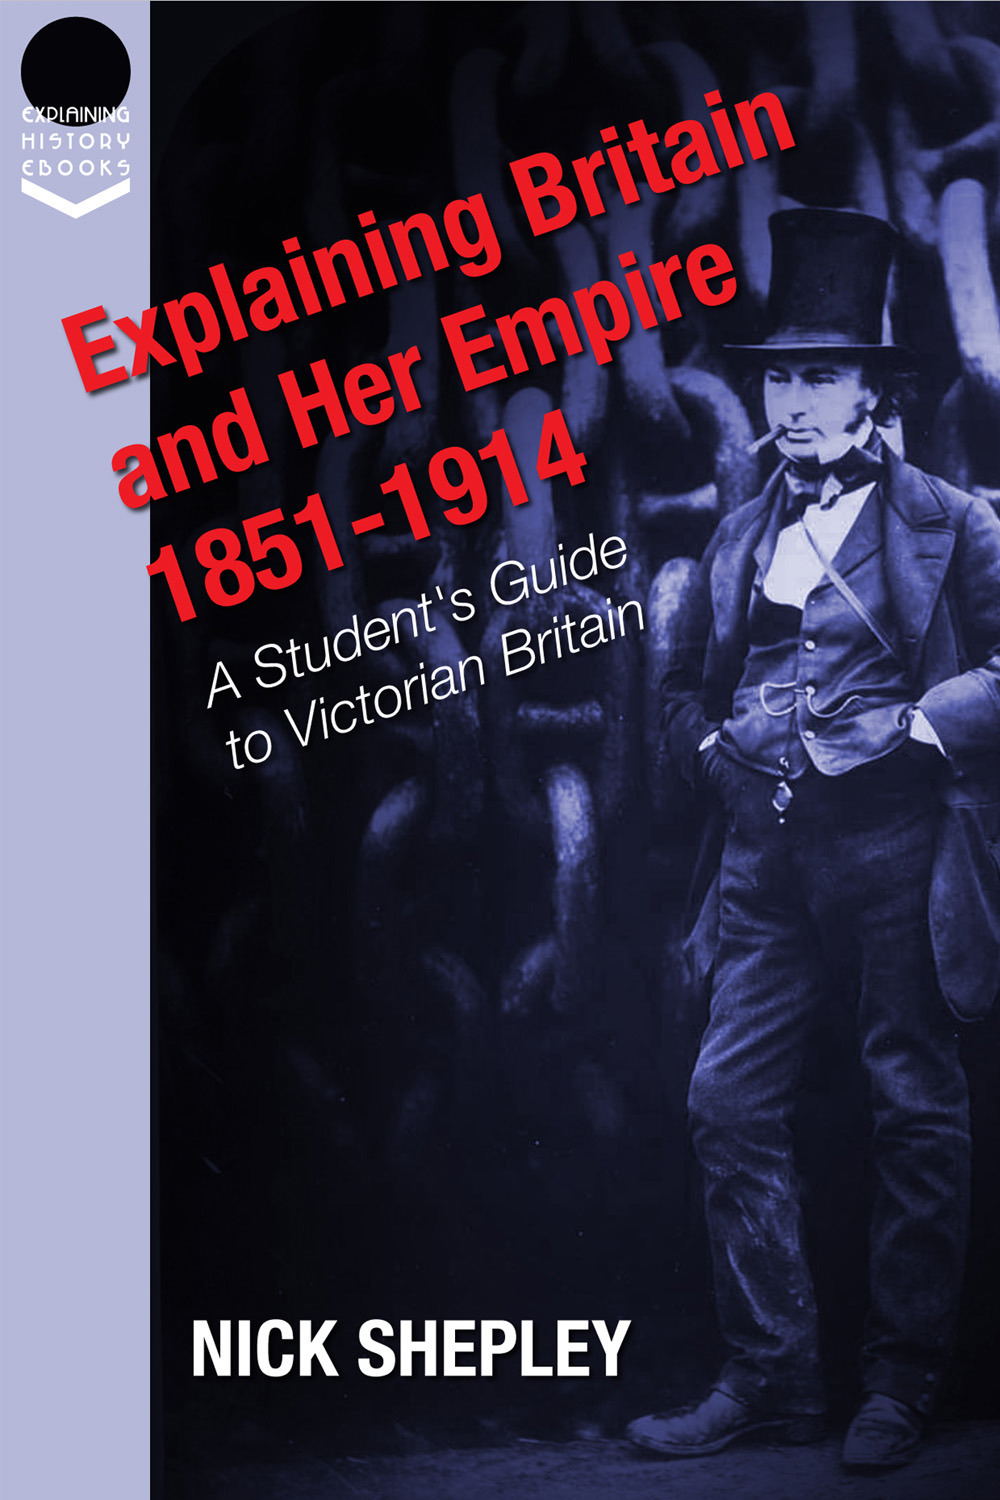 Explaining Britain and Her Empire: 1851-1914